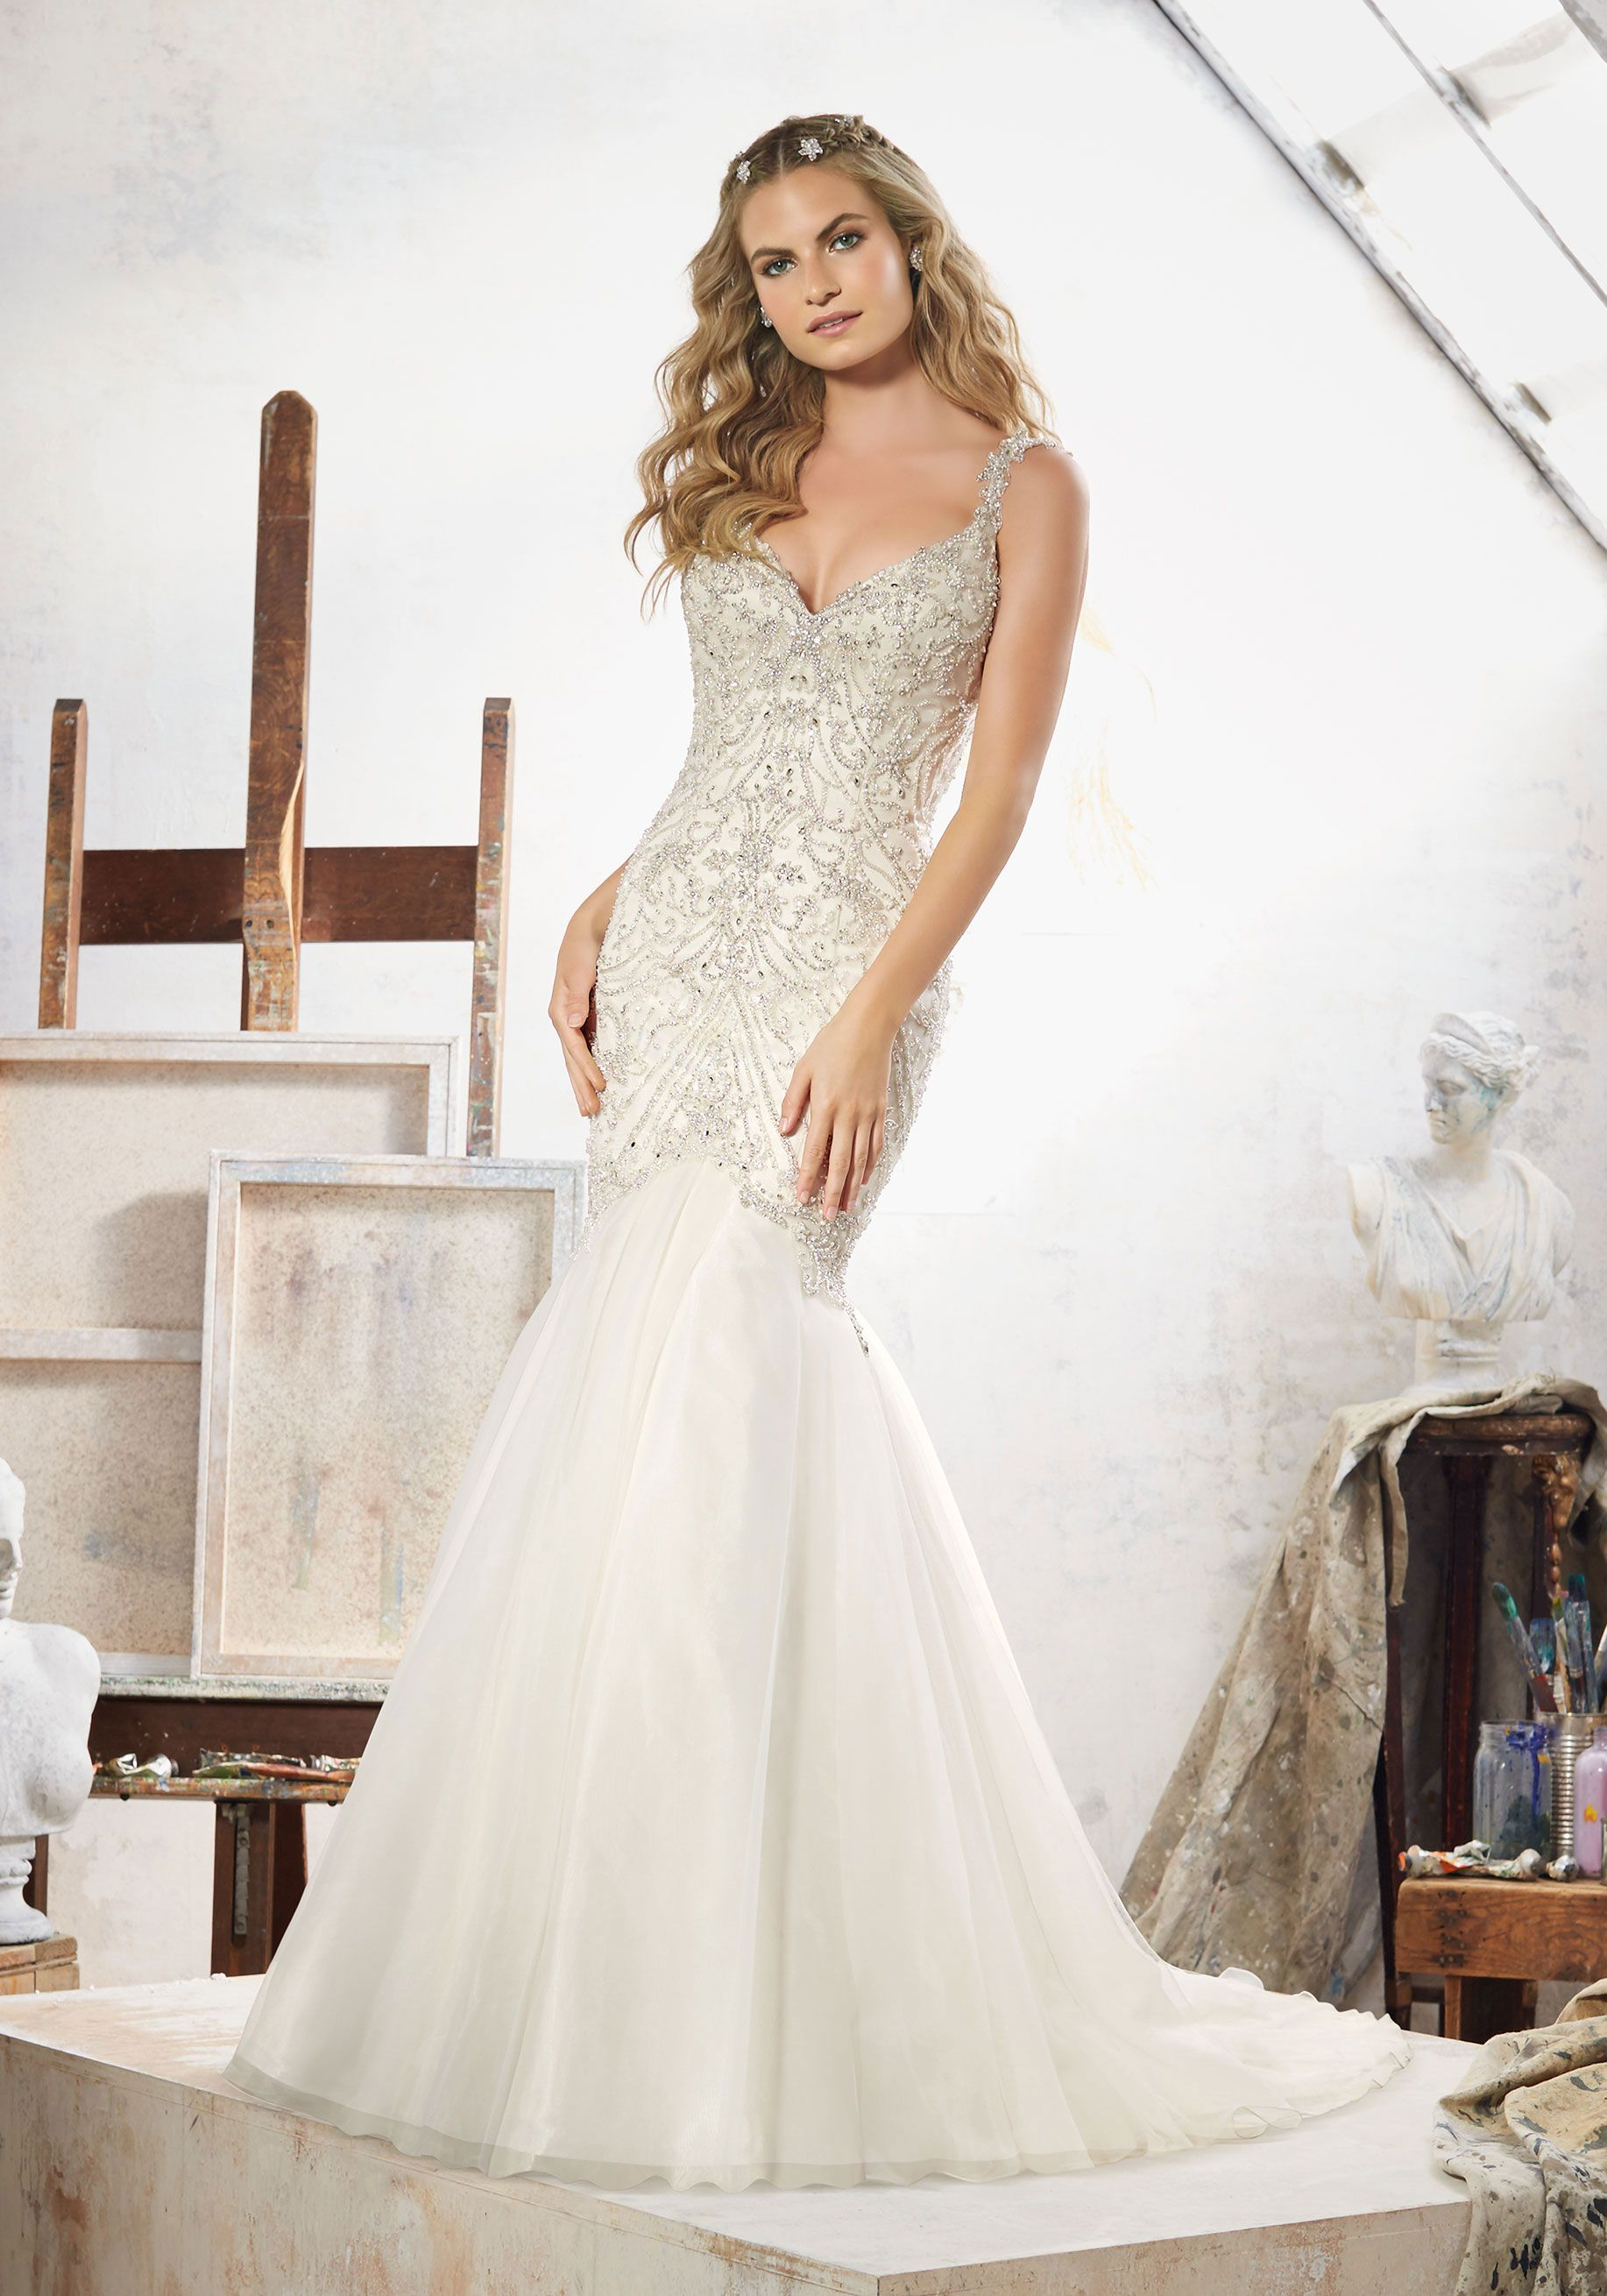 Morilee By Madeline Gardner Maeve Style 8107 Glamorous Fit Flare Wedding Dress Featuring Crystal Beaded Embroidery On Tulle Dramatic Open Back